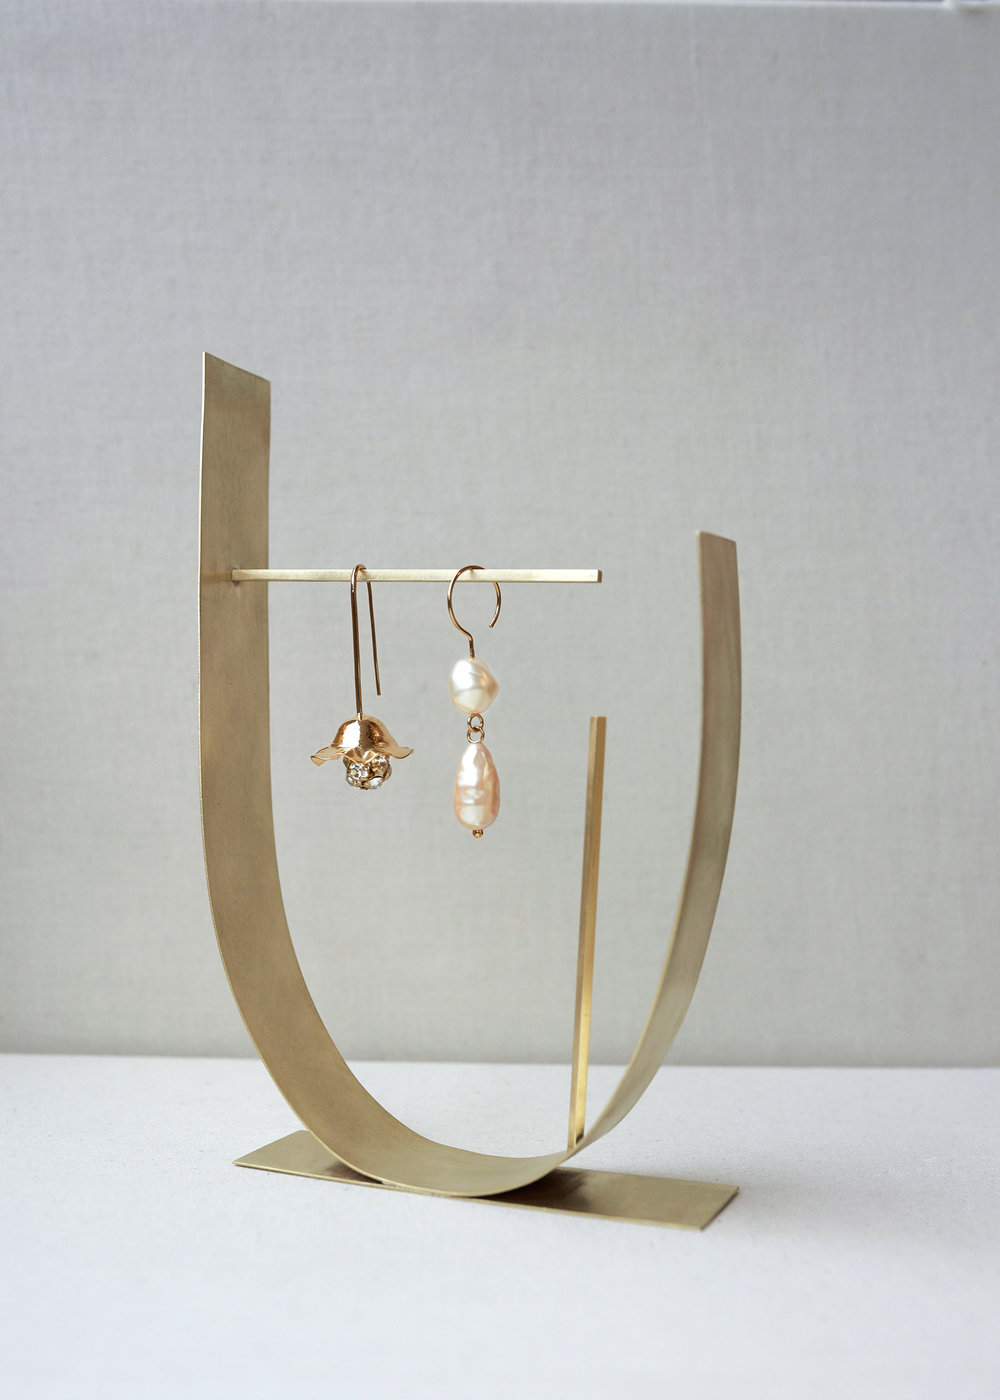 A sculptural metal jewellery stand designed by Parris for their brand's new lifestyle line.